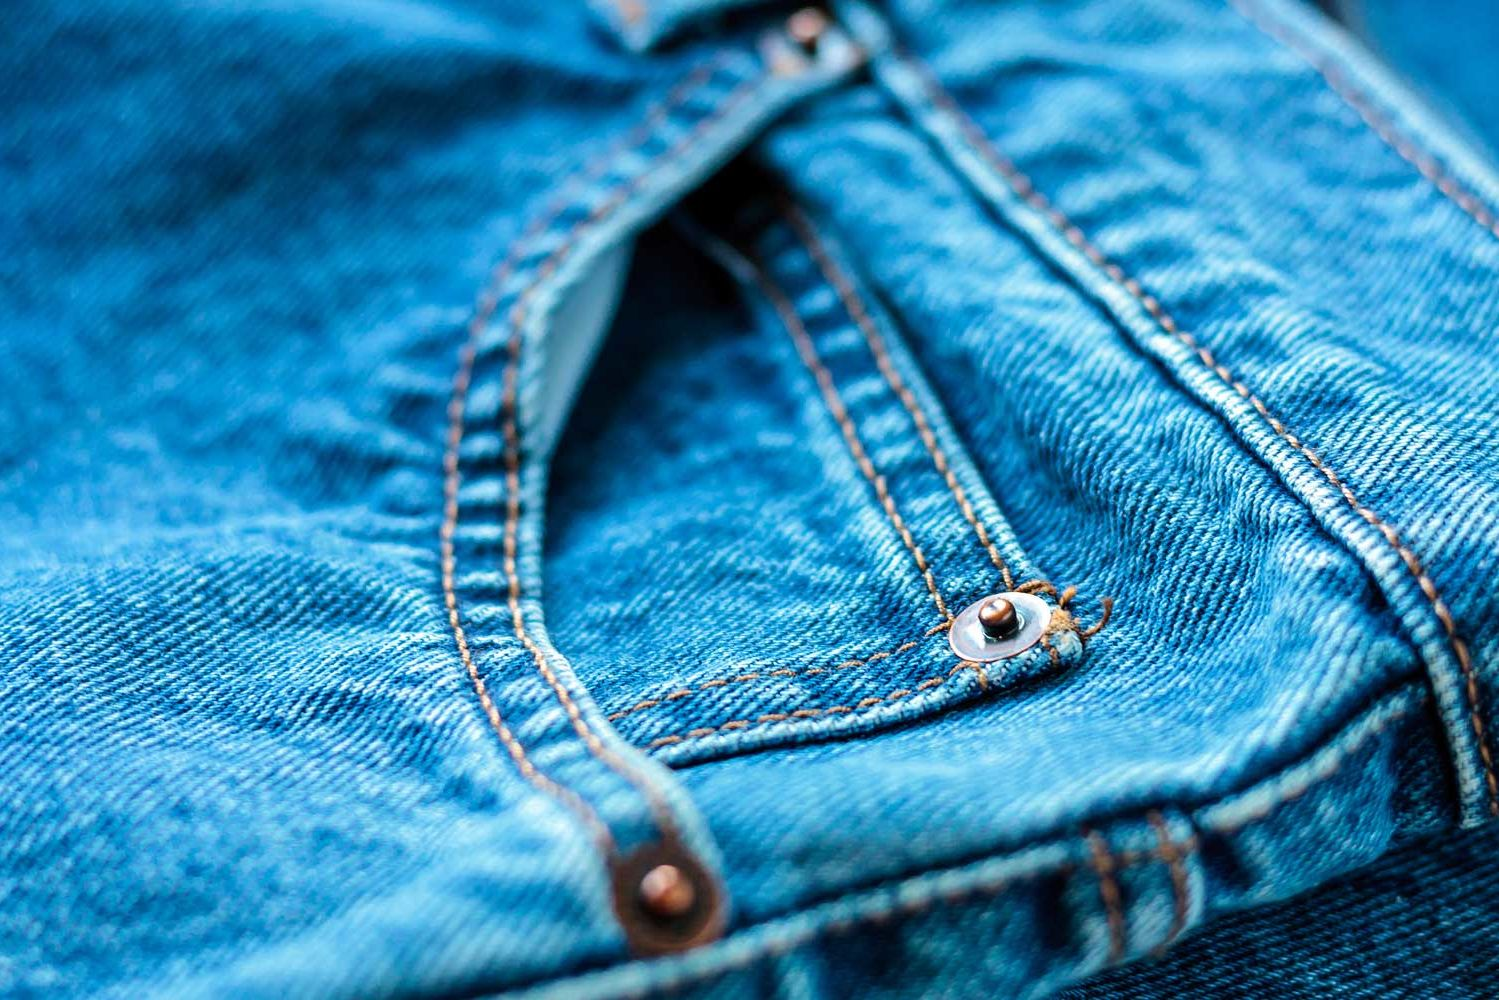 The Real Reason Why There are Metal Buttons on Your Denim Pockets